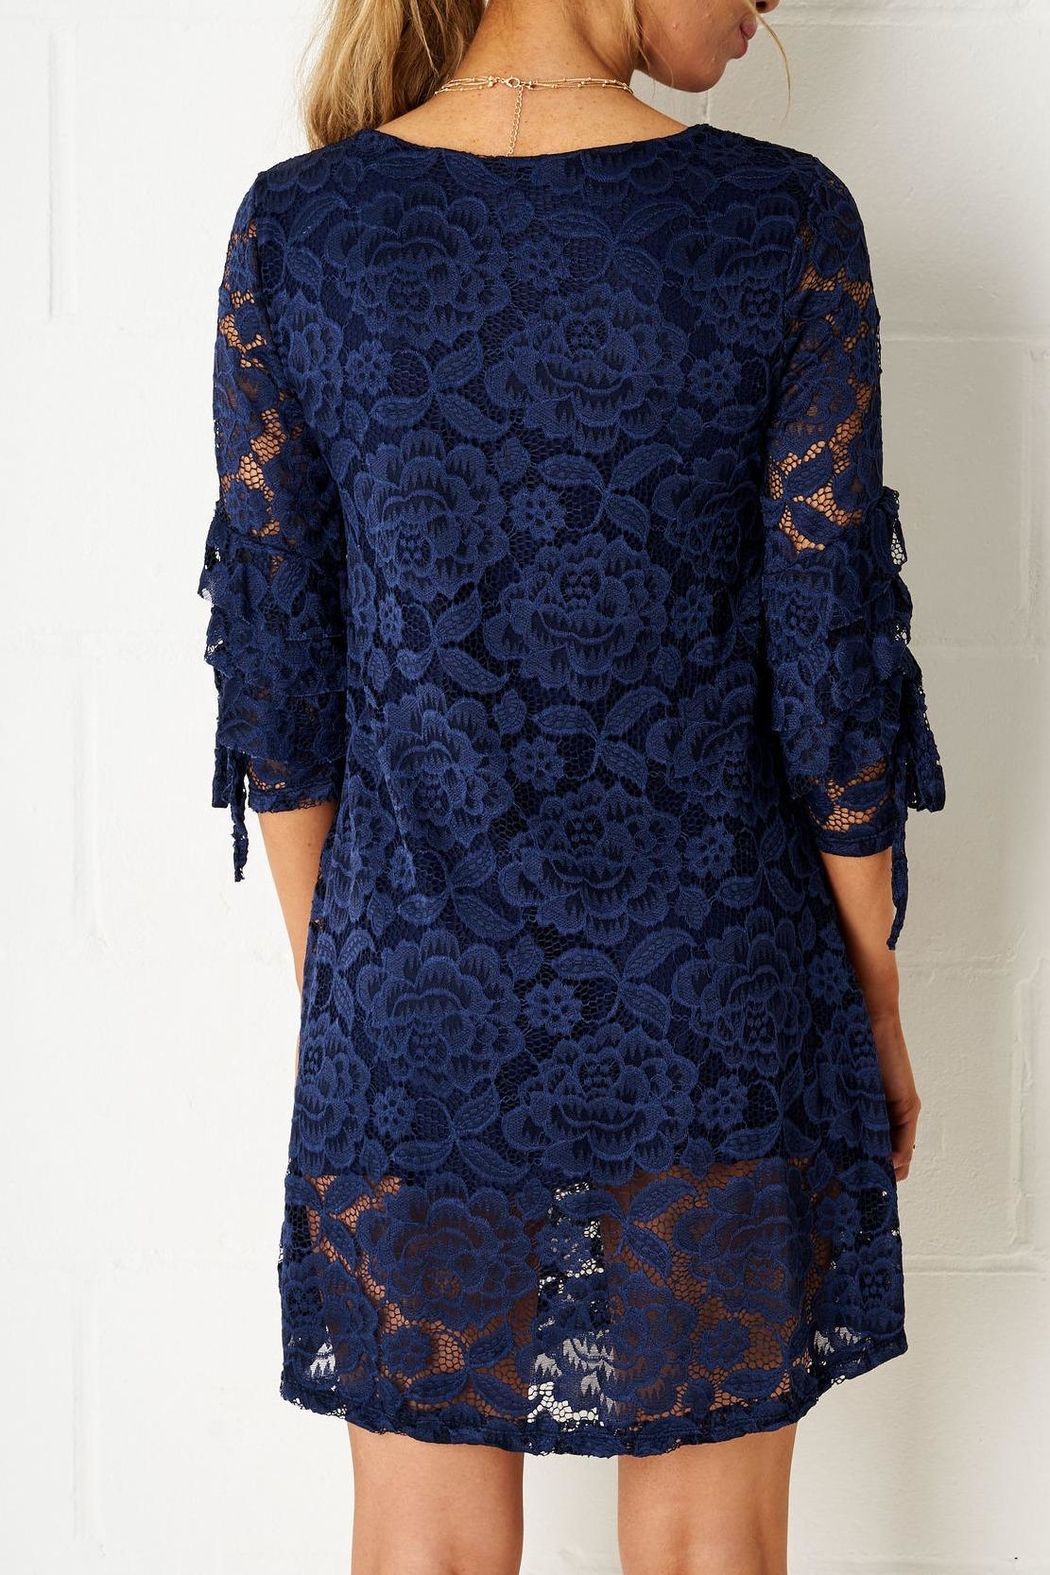 frontrow Navy Lace Dress - Front Full Image